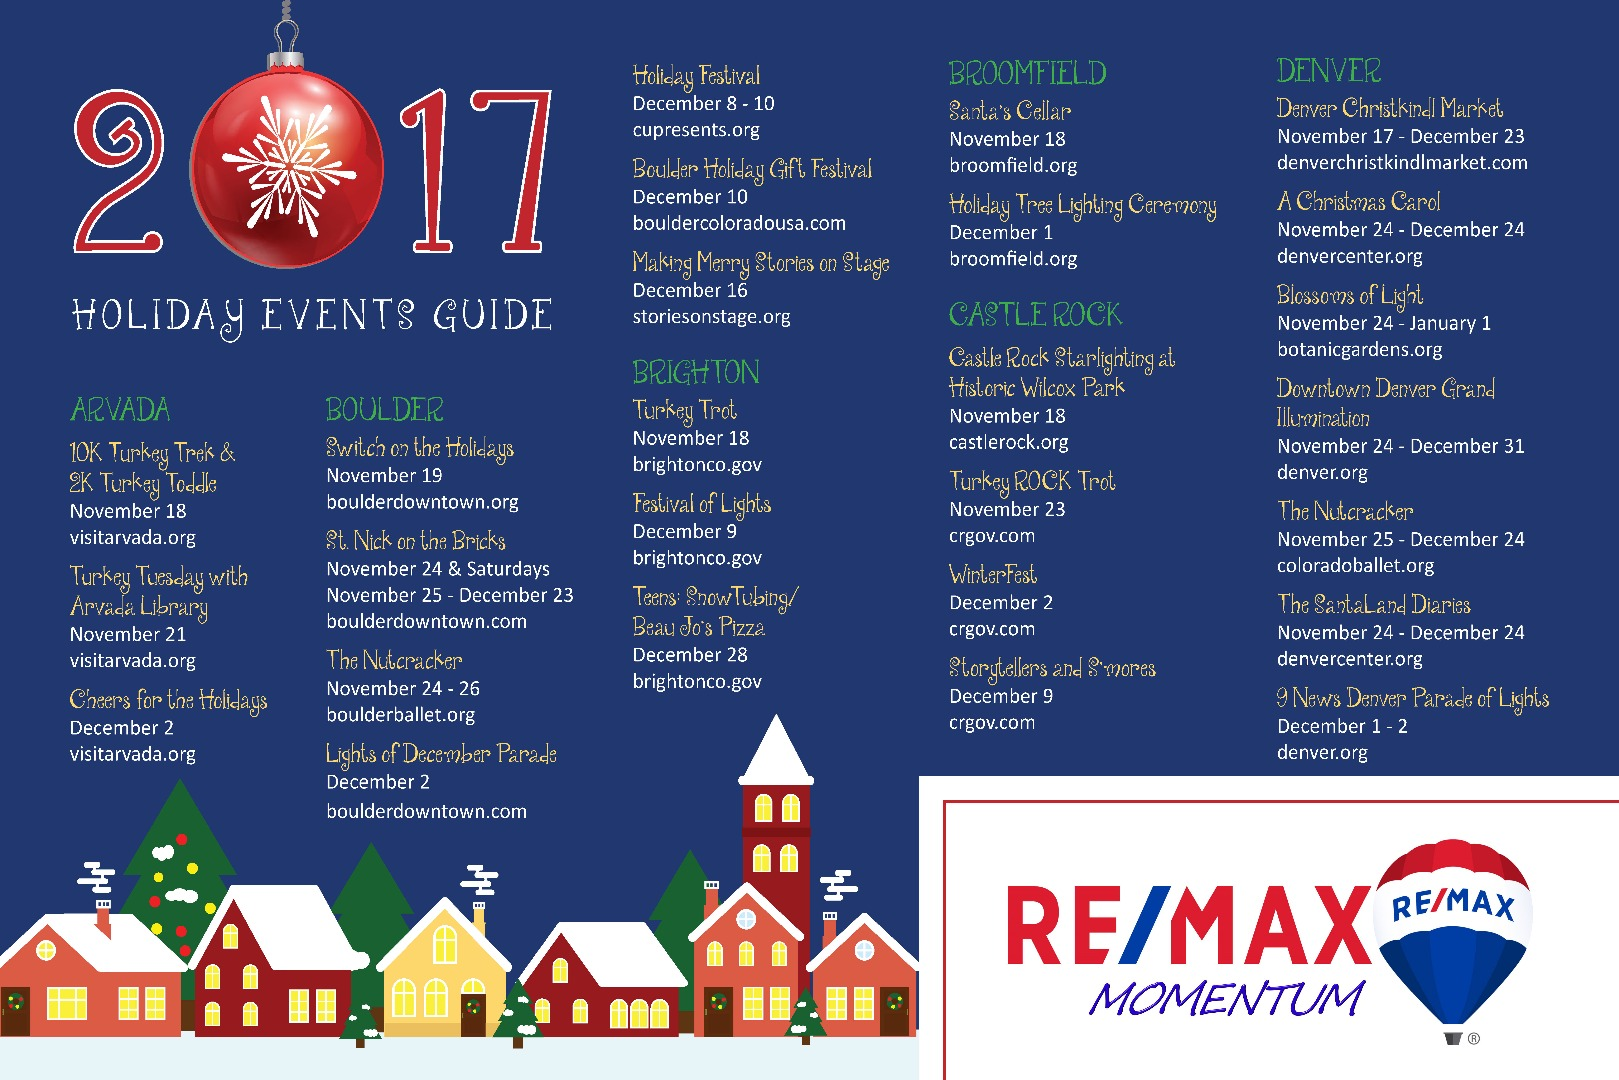 2017 Holiday Events Guide MD_Page_1.jpg